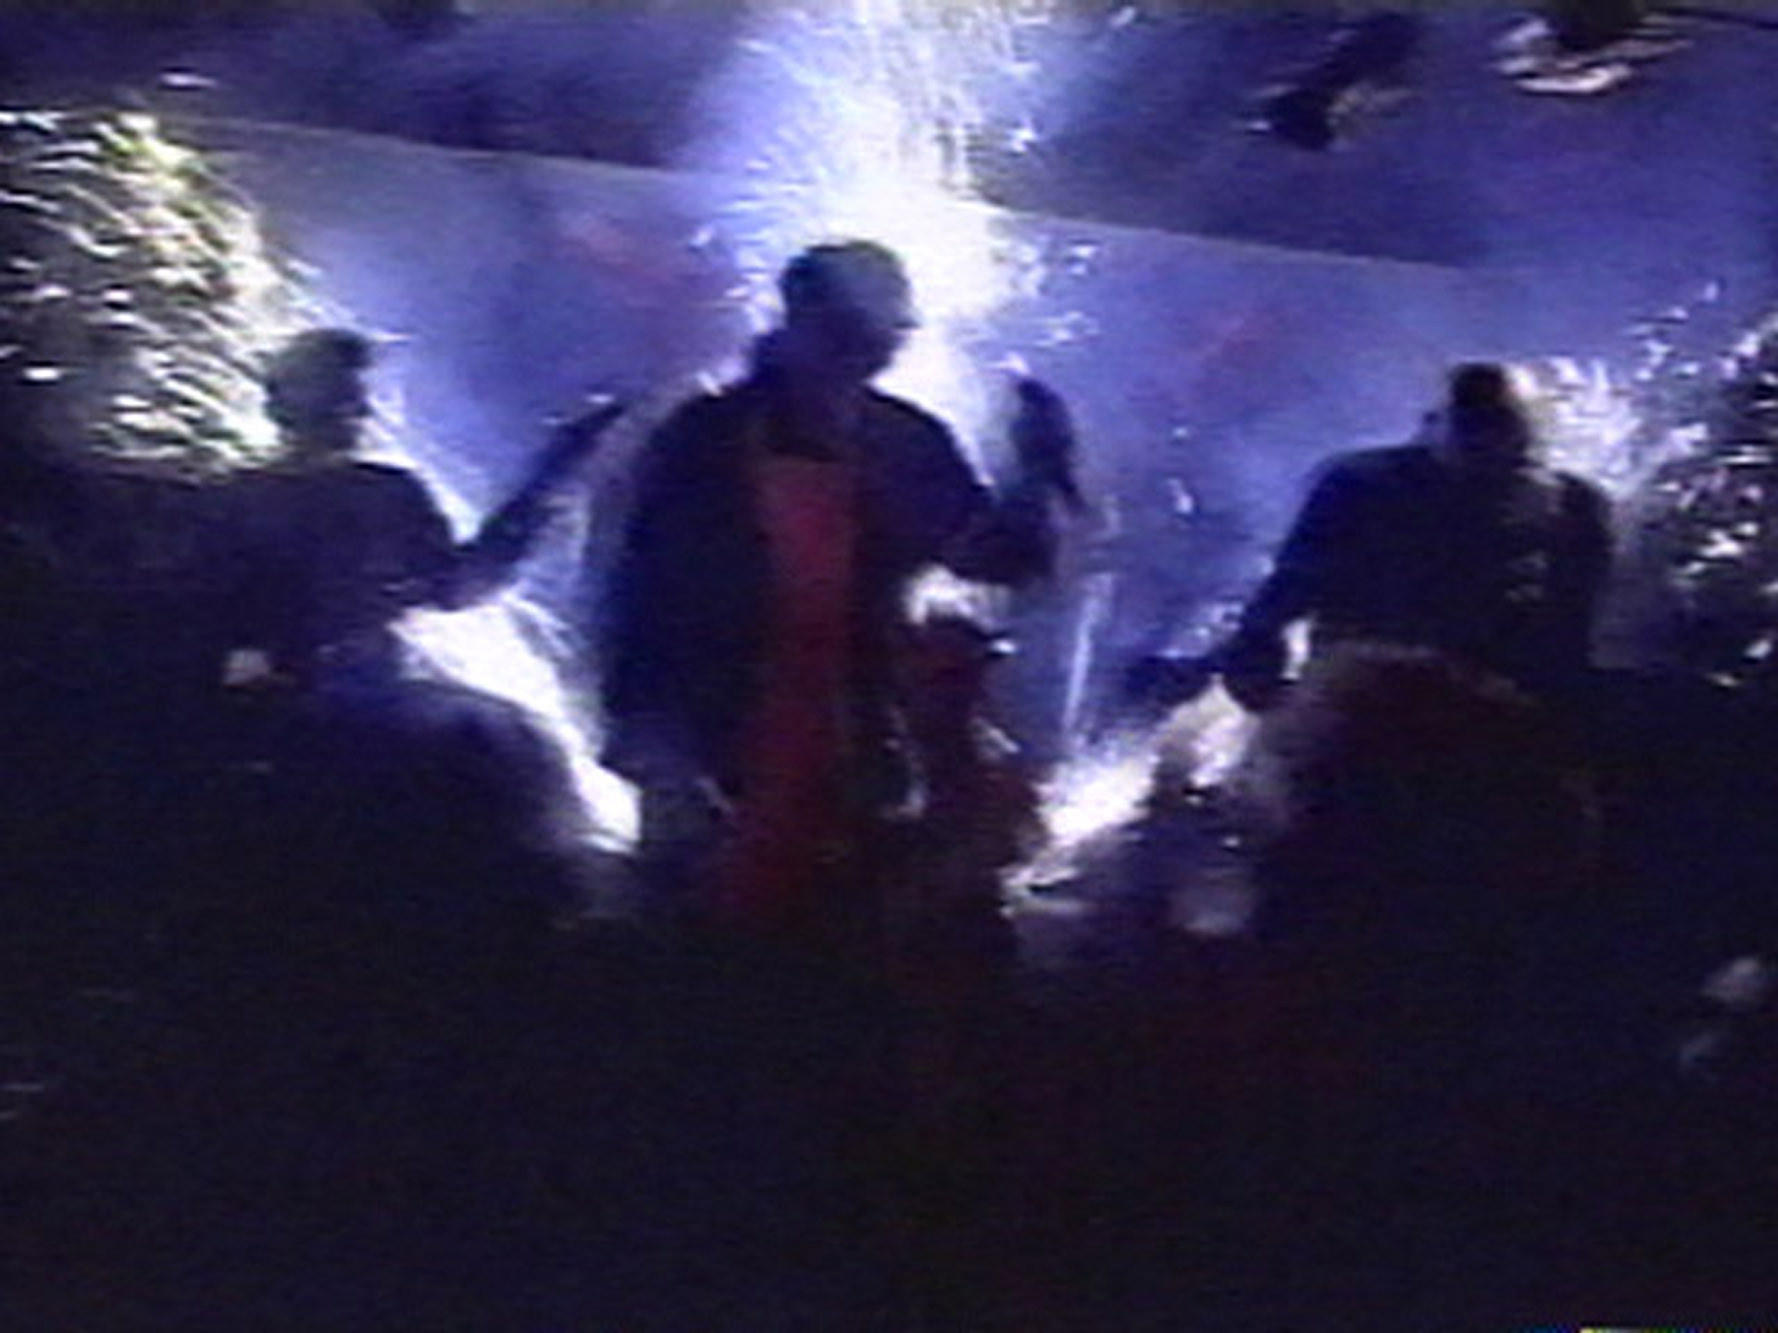 Great White lead singer Jack Russell and the band perform, in this view from television, moments before the group's pyrotechnic display set off a deadly fire at the Station nightclub in West Warwick, R.I., on Feb. 20, 2003.